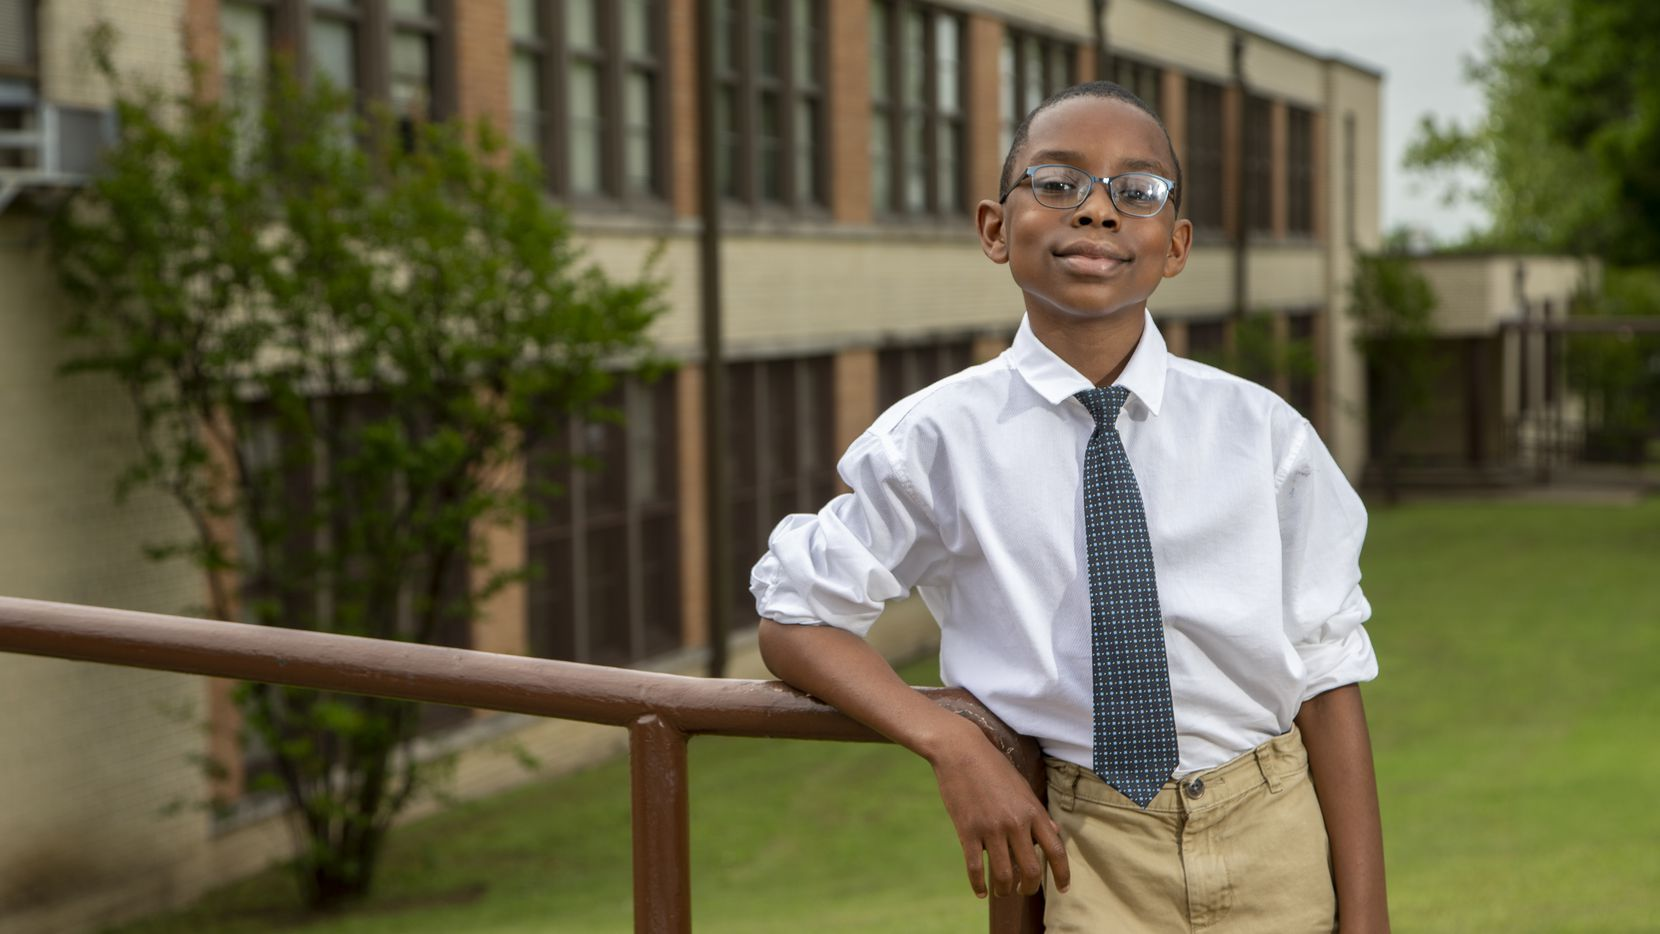 Elijah Robertson, a fifth-grader at Clara Oliver Elementary School in Dallas, has written three adventure fiction novels for his school library, and he's just getting started.